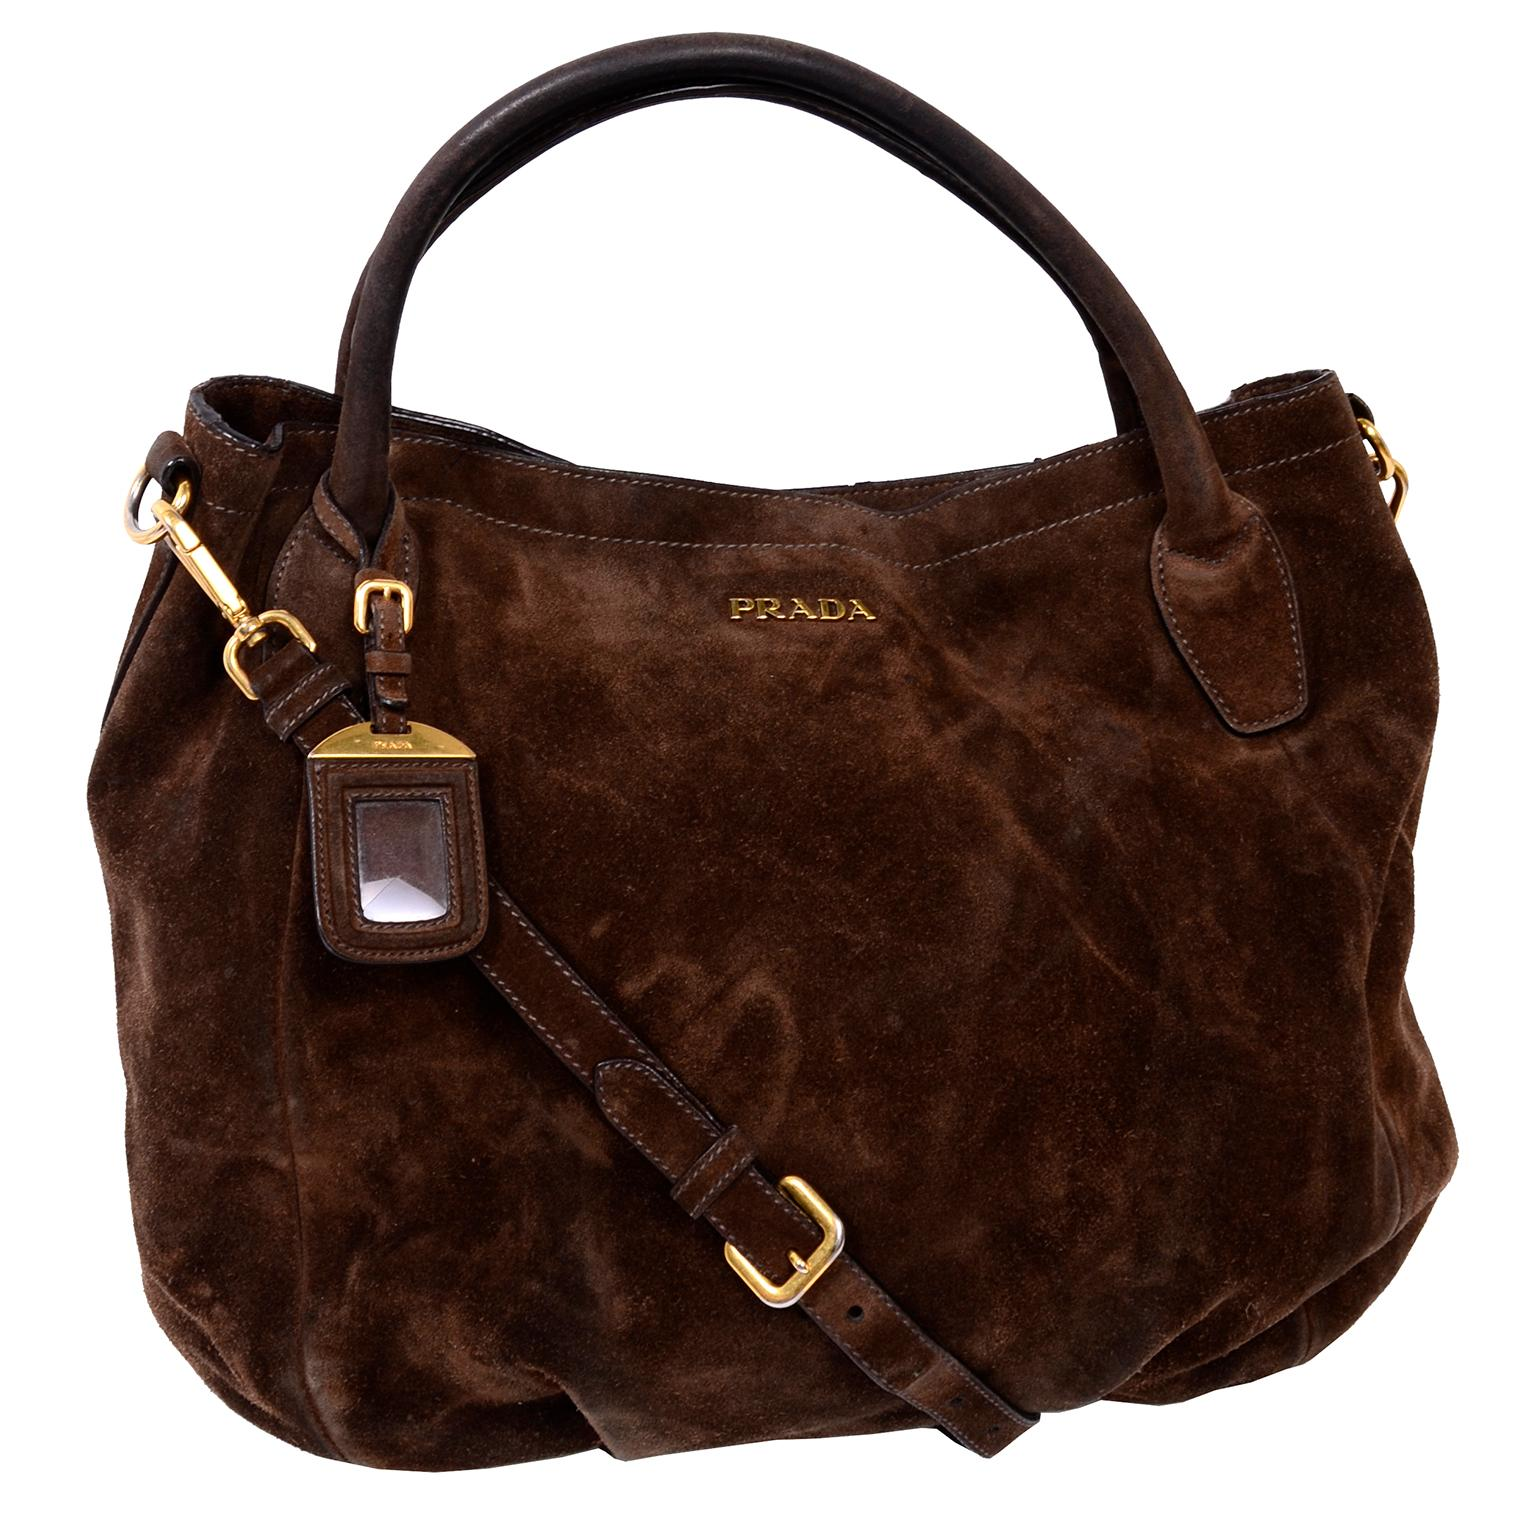 480faf7510 Prada Spring-Summer 2003 brown leather metal bar bag For Sale at 1stdibs